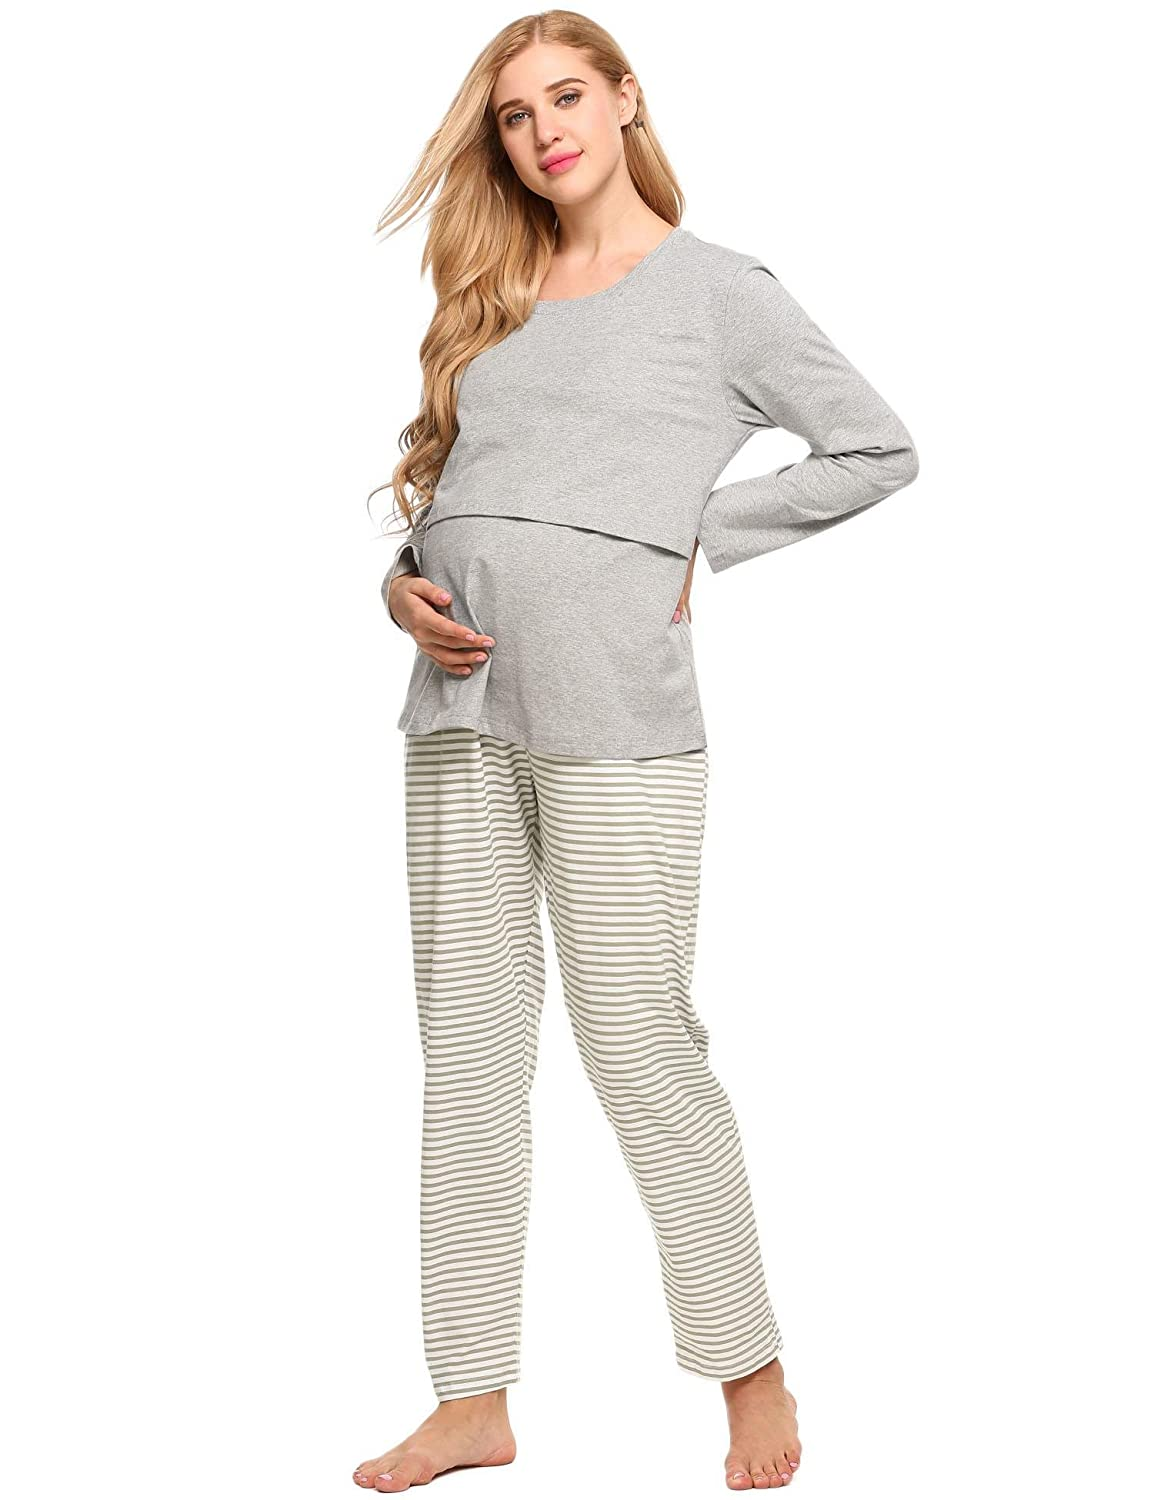 37a04d3d57d Aimado Maternity Sleepwear Sets for Women Long Sleeves Pjs Nursing Gowns at  Amazon Women's Clothing store: